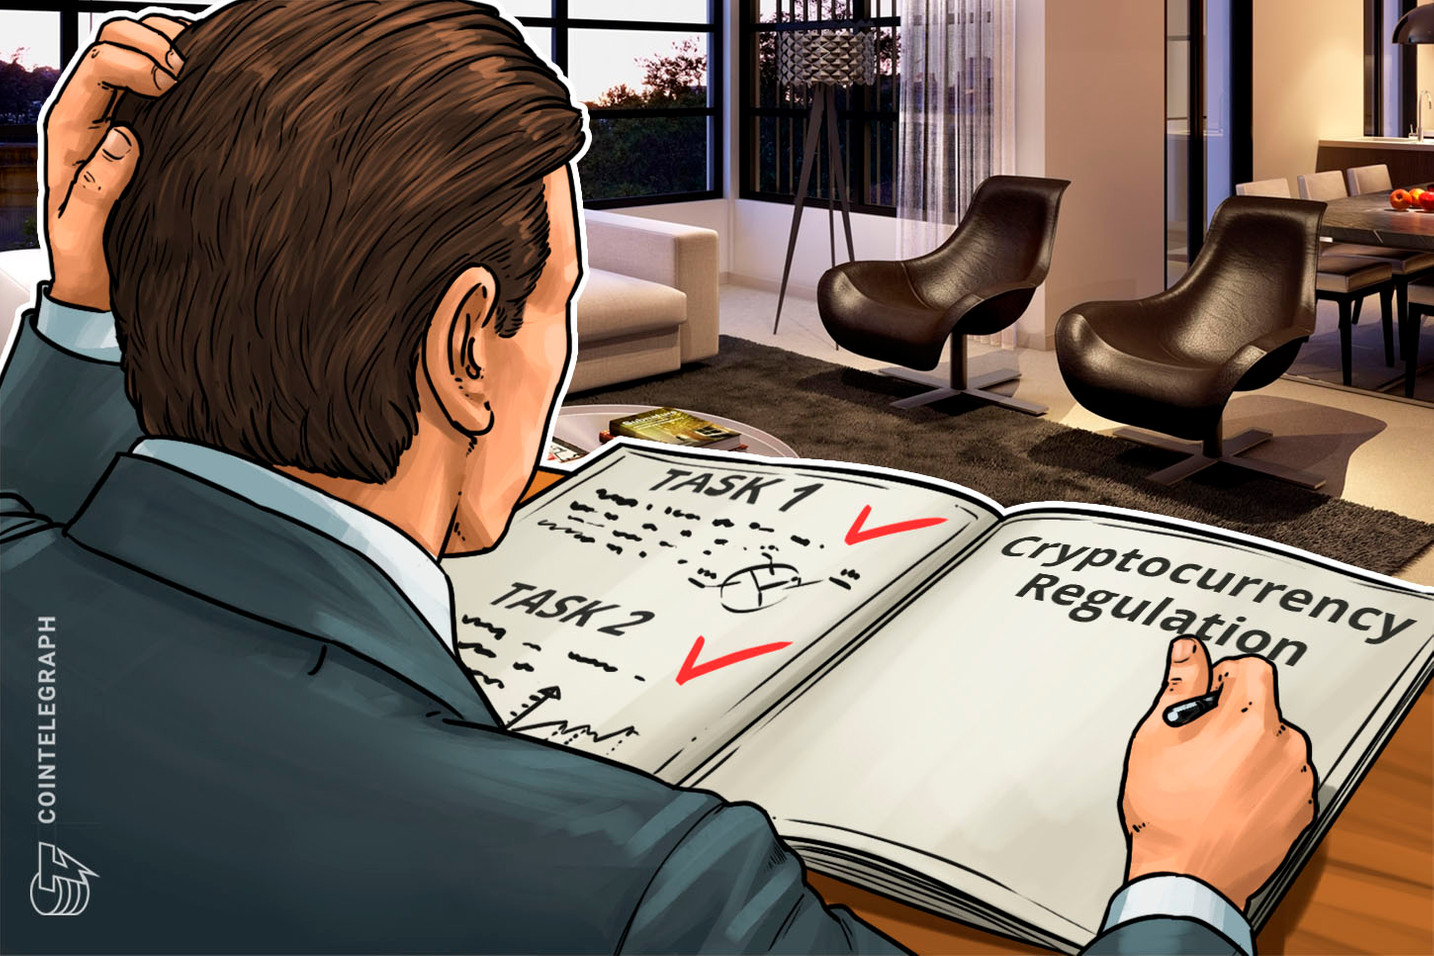 US CFTC Chair Says Agency Has Resisted Calls to Suppress Development of Crypto Sector